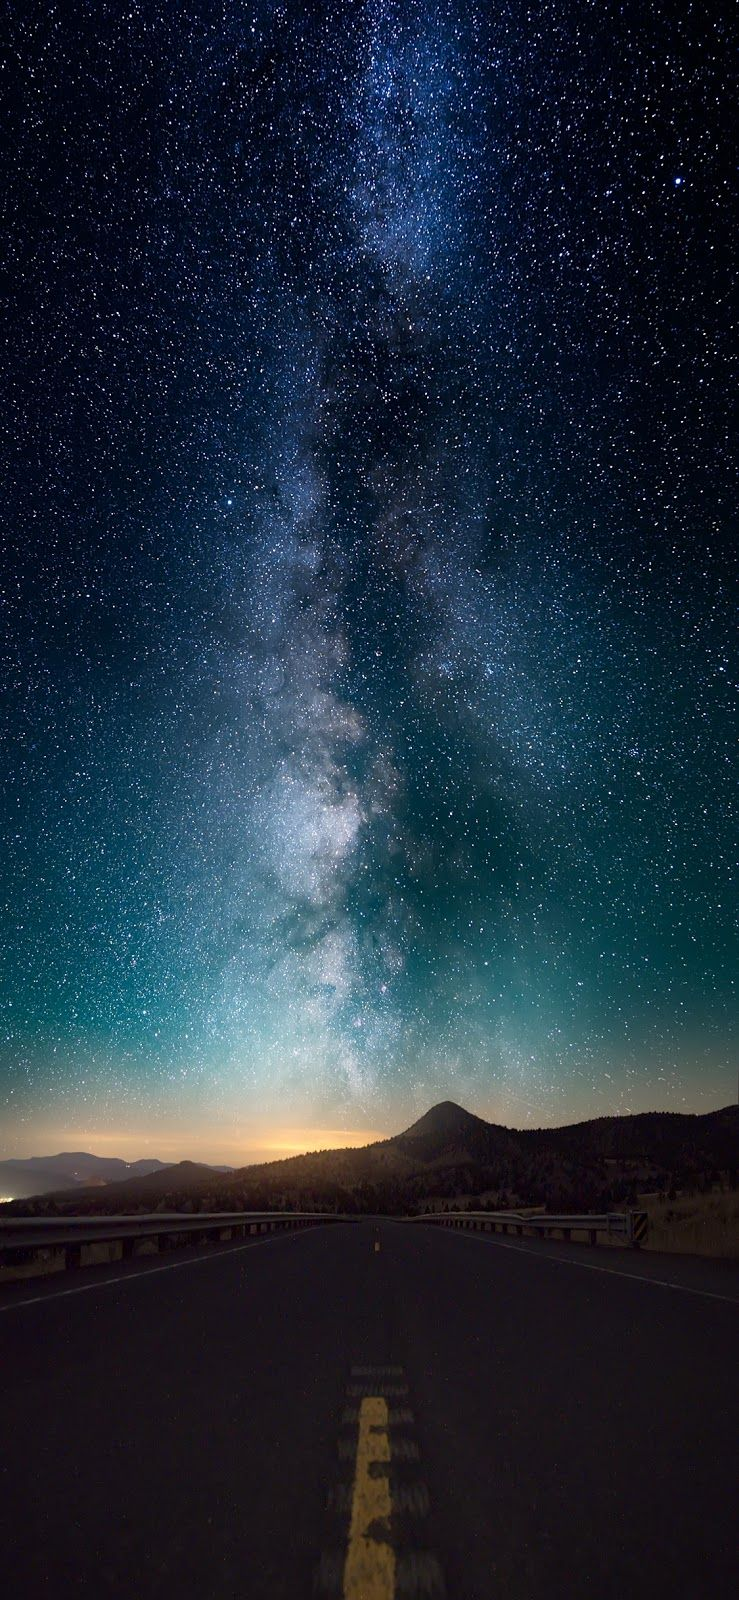 Starry Night Iphone X Starry Night Wallpaper Cellphone